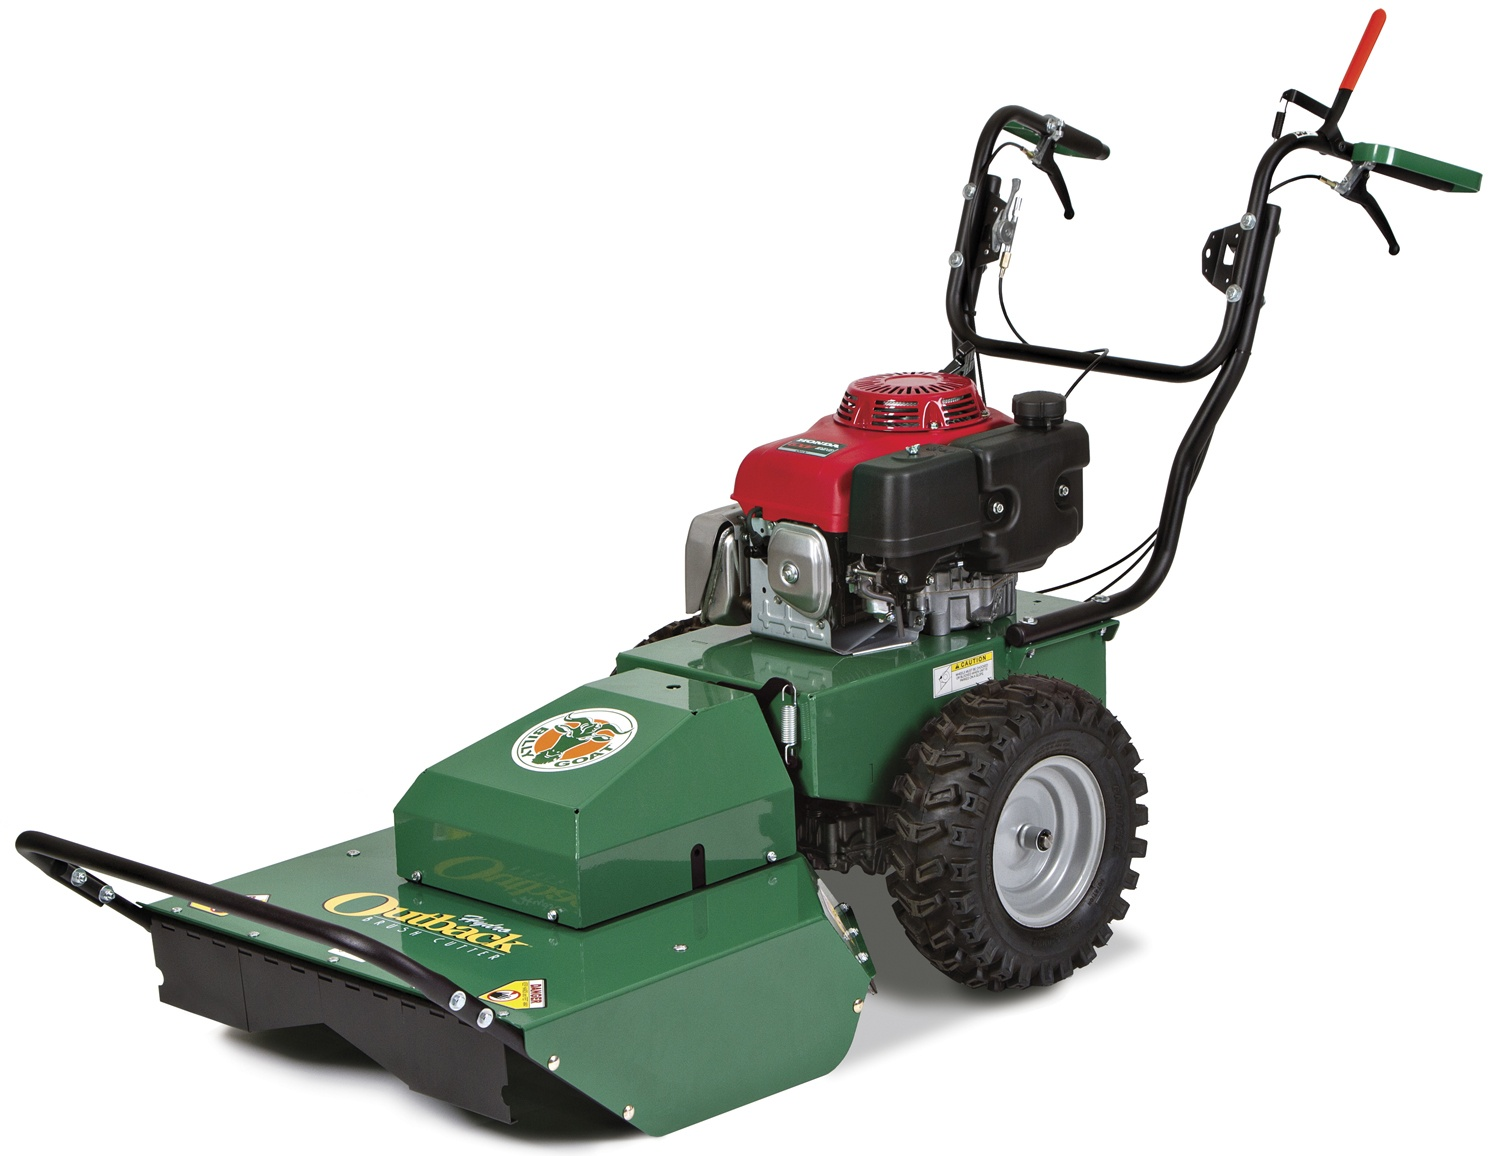 GROUNDS CLEARANCE MADE EASY